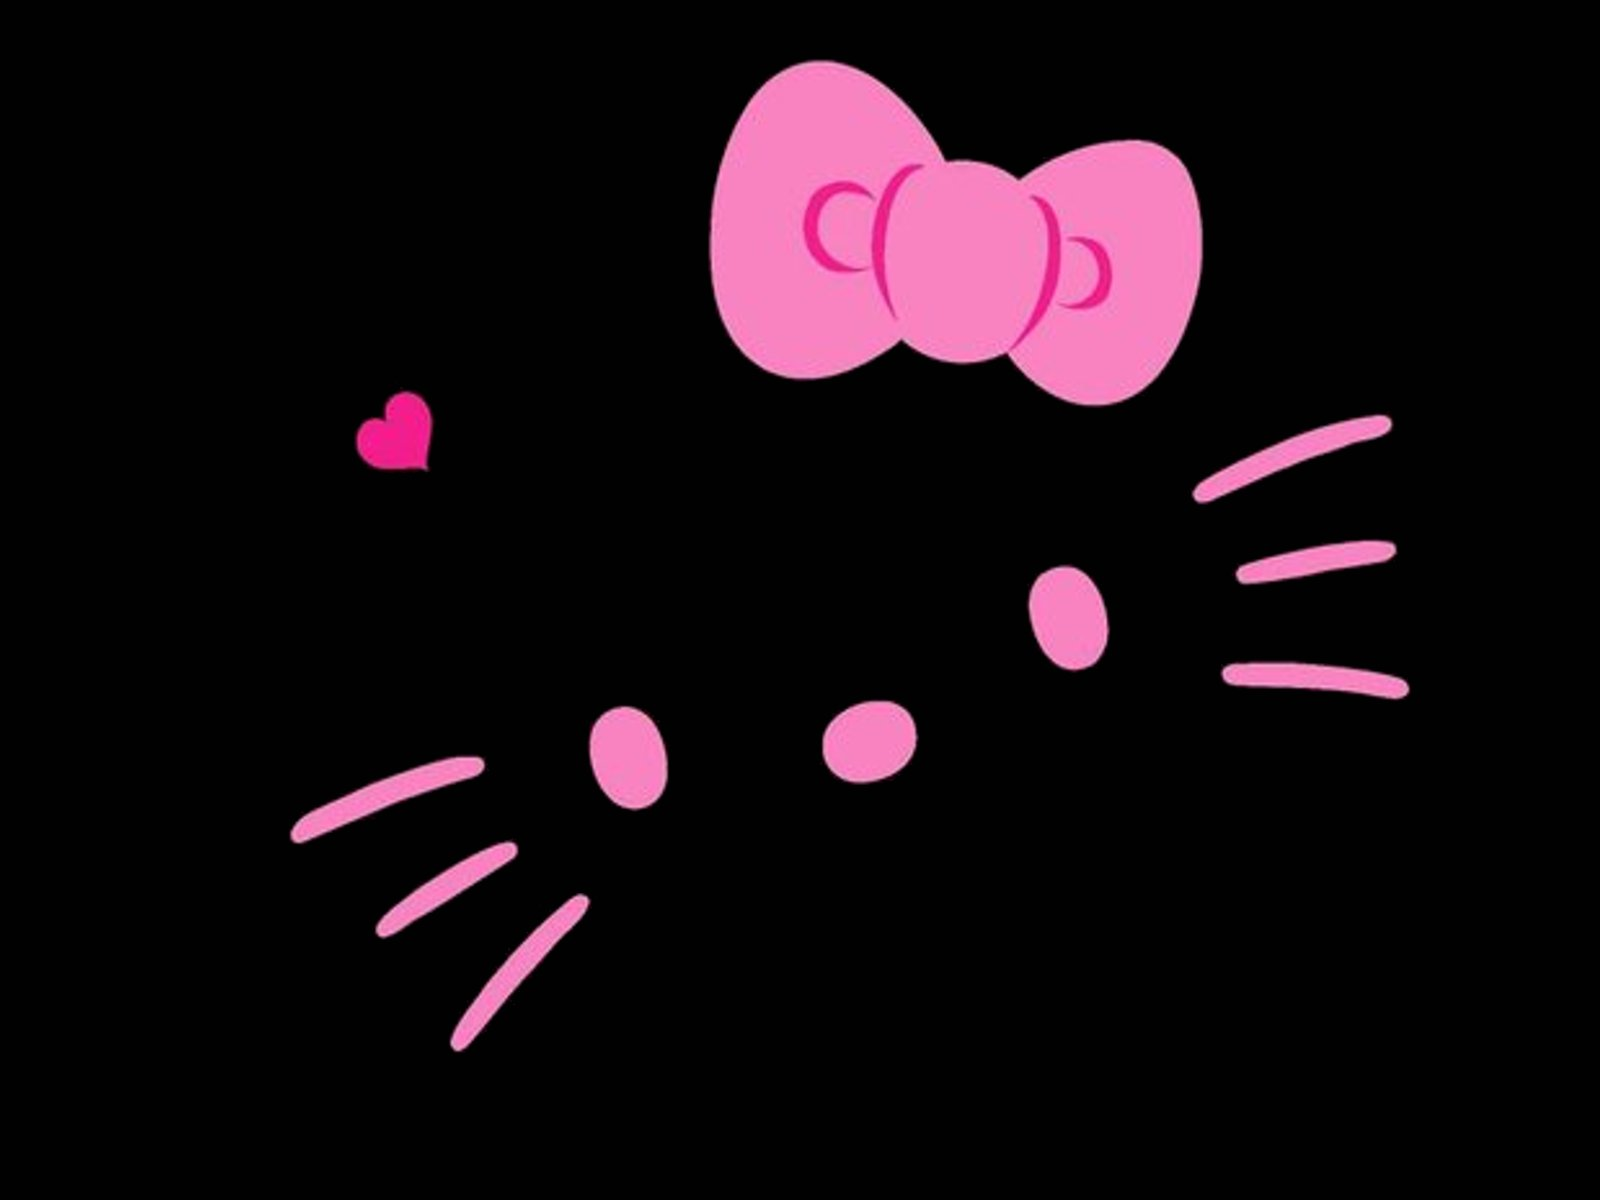 Simple Wallpaper Hello Kitty Heart - bowbabymadness-the-luv-of-hello-kitty-is-me-37413083-1600-1200  Trends_794360.jpg